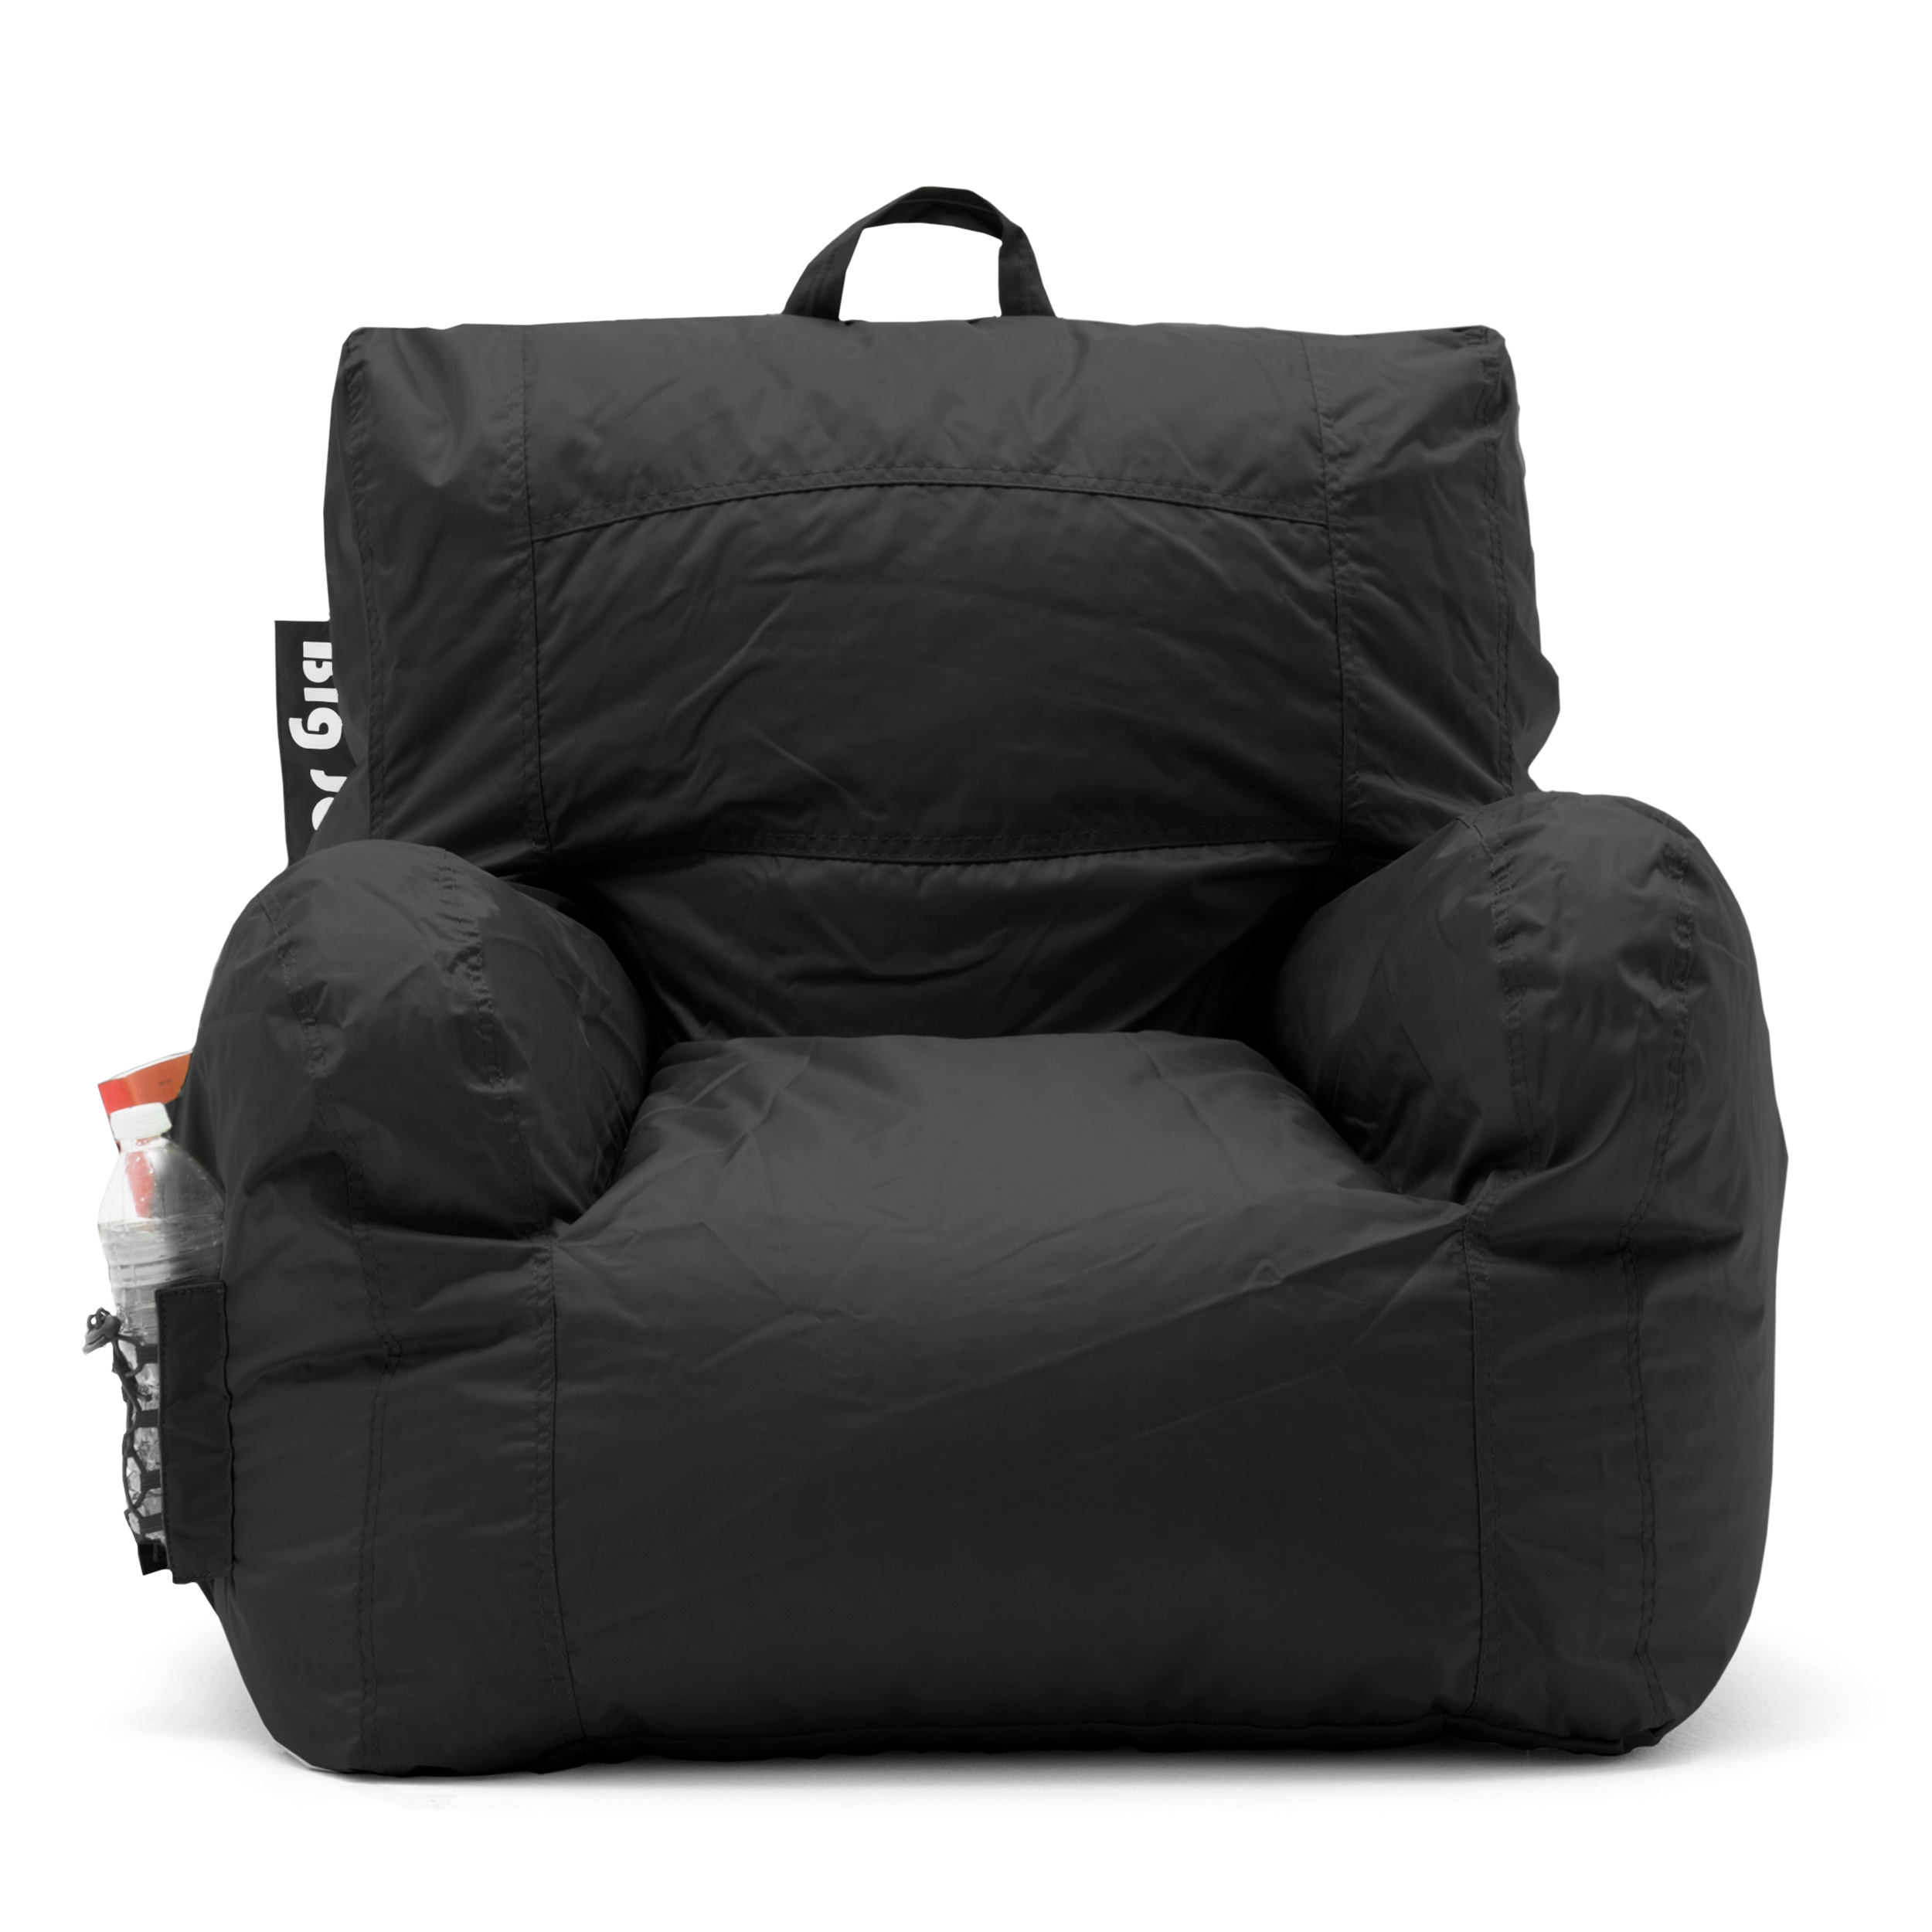 Marvelous Big Joe Bean Bag Chair Multiple Colors 33 X 32 X 25 Caraccident5 Cool Chair Designs And Ideas Caraccident5Info